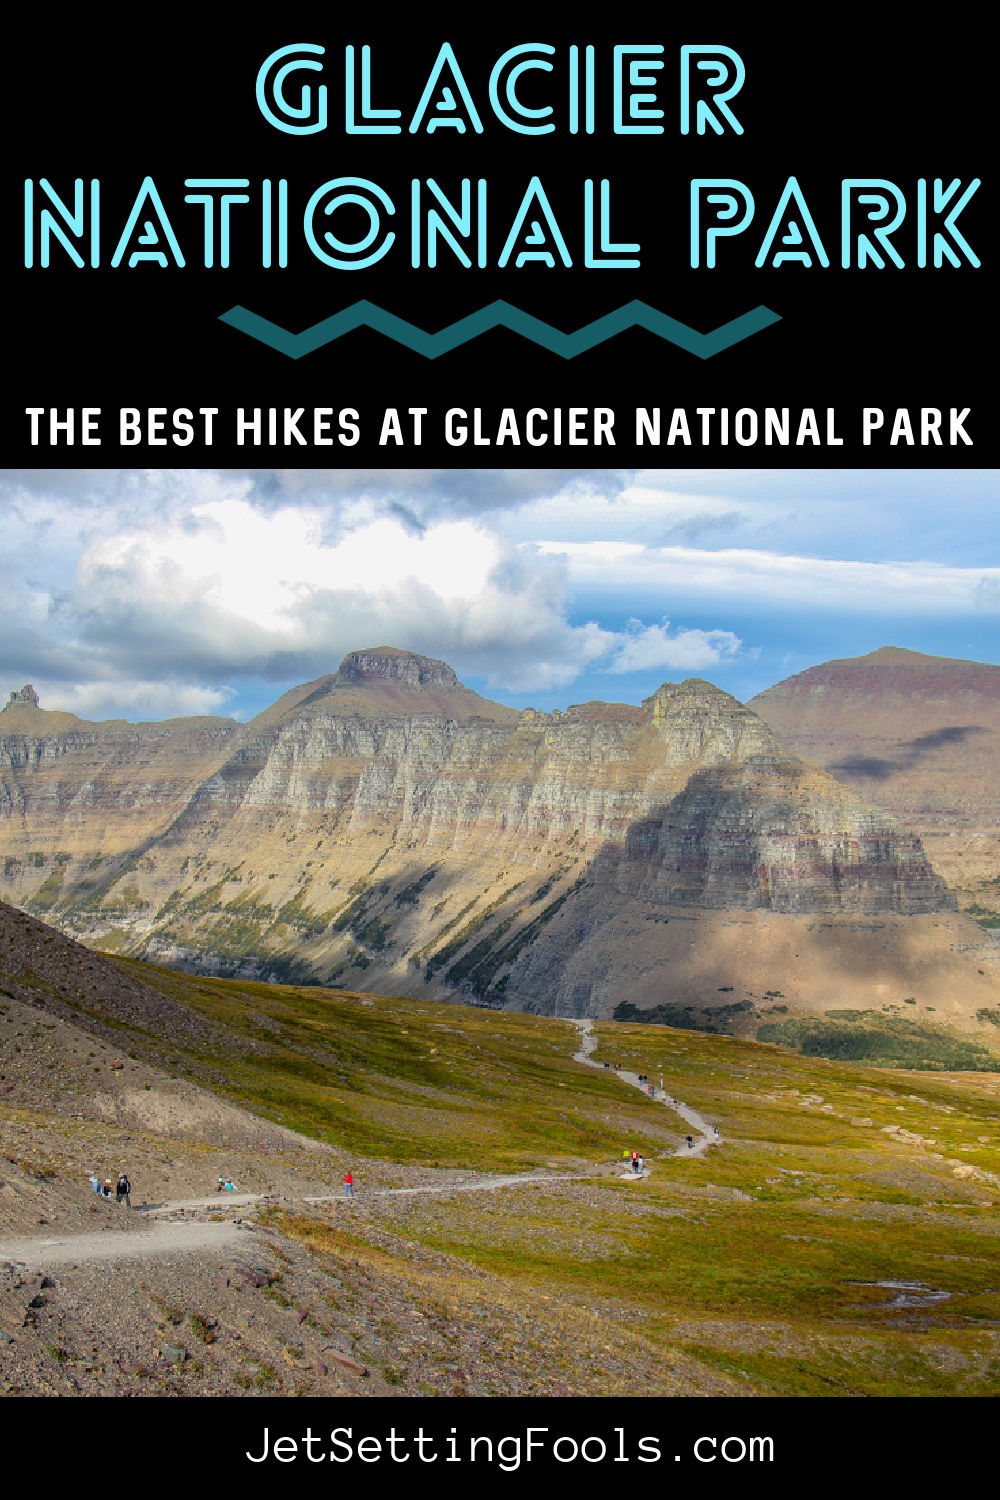 Best Hikes at Glacier National Park by JetSettingFools.com